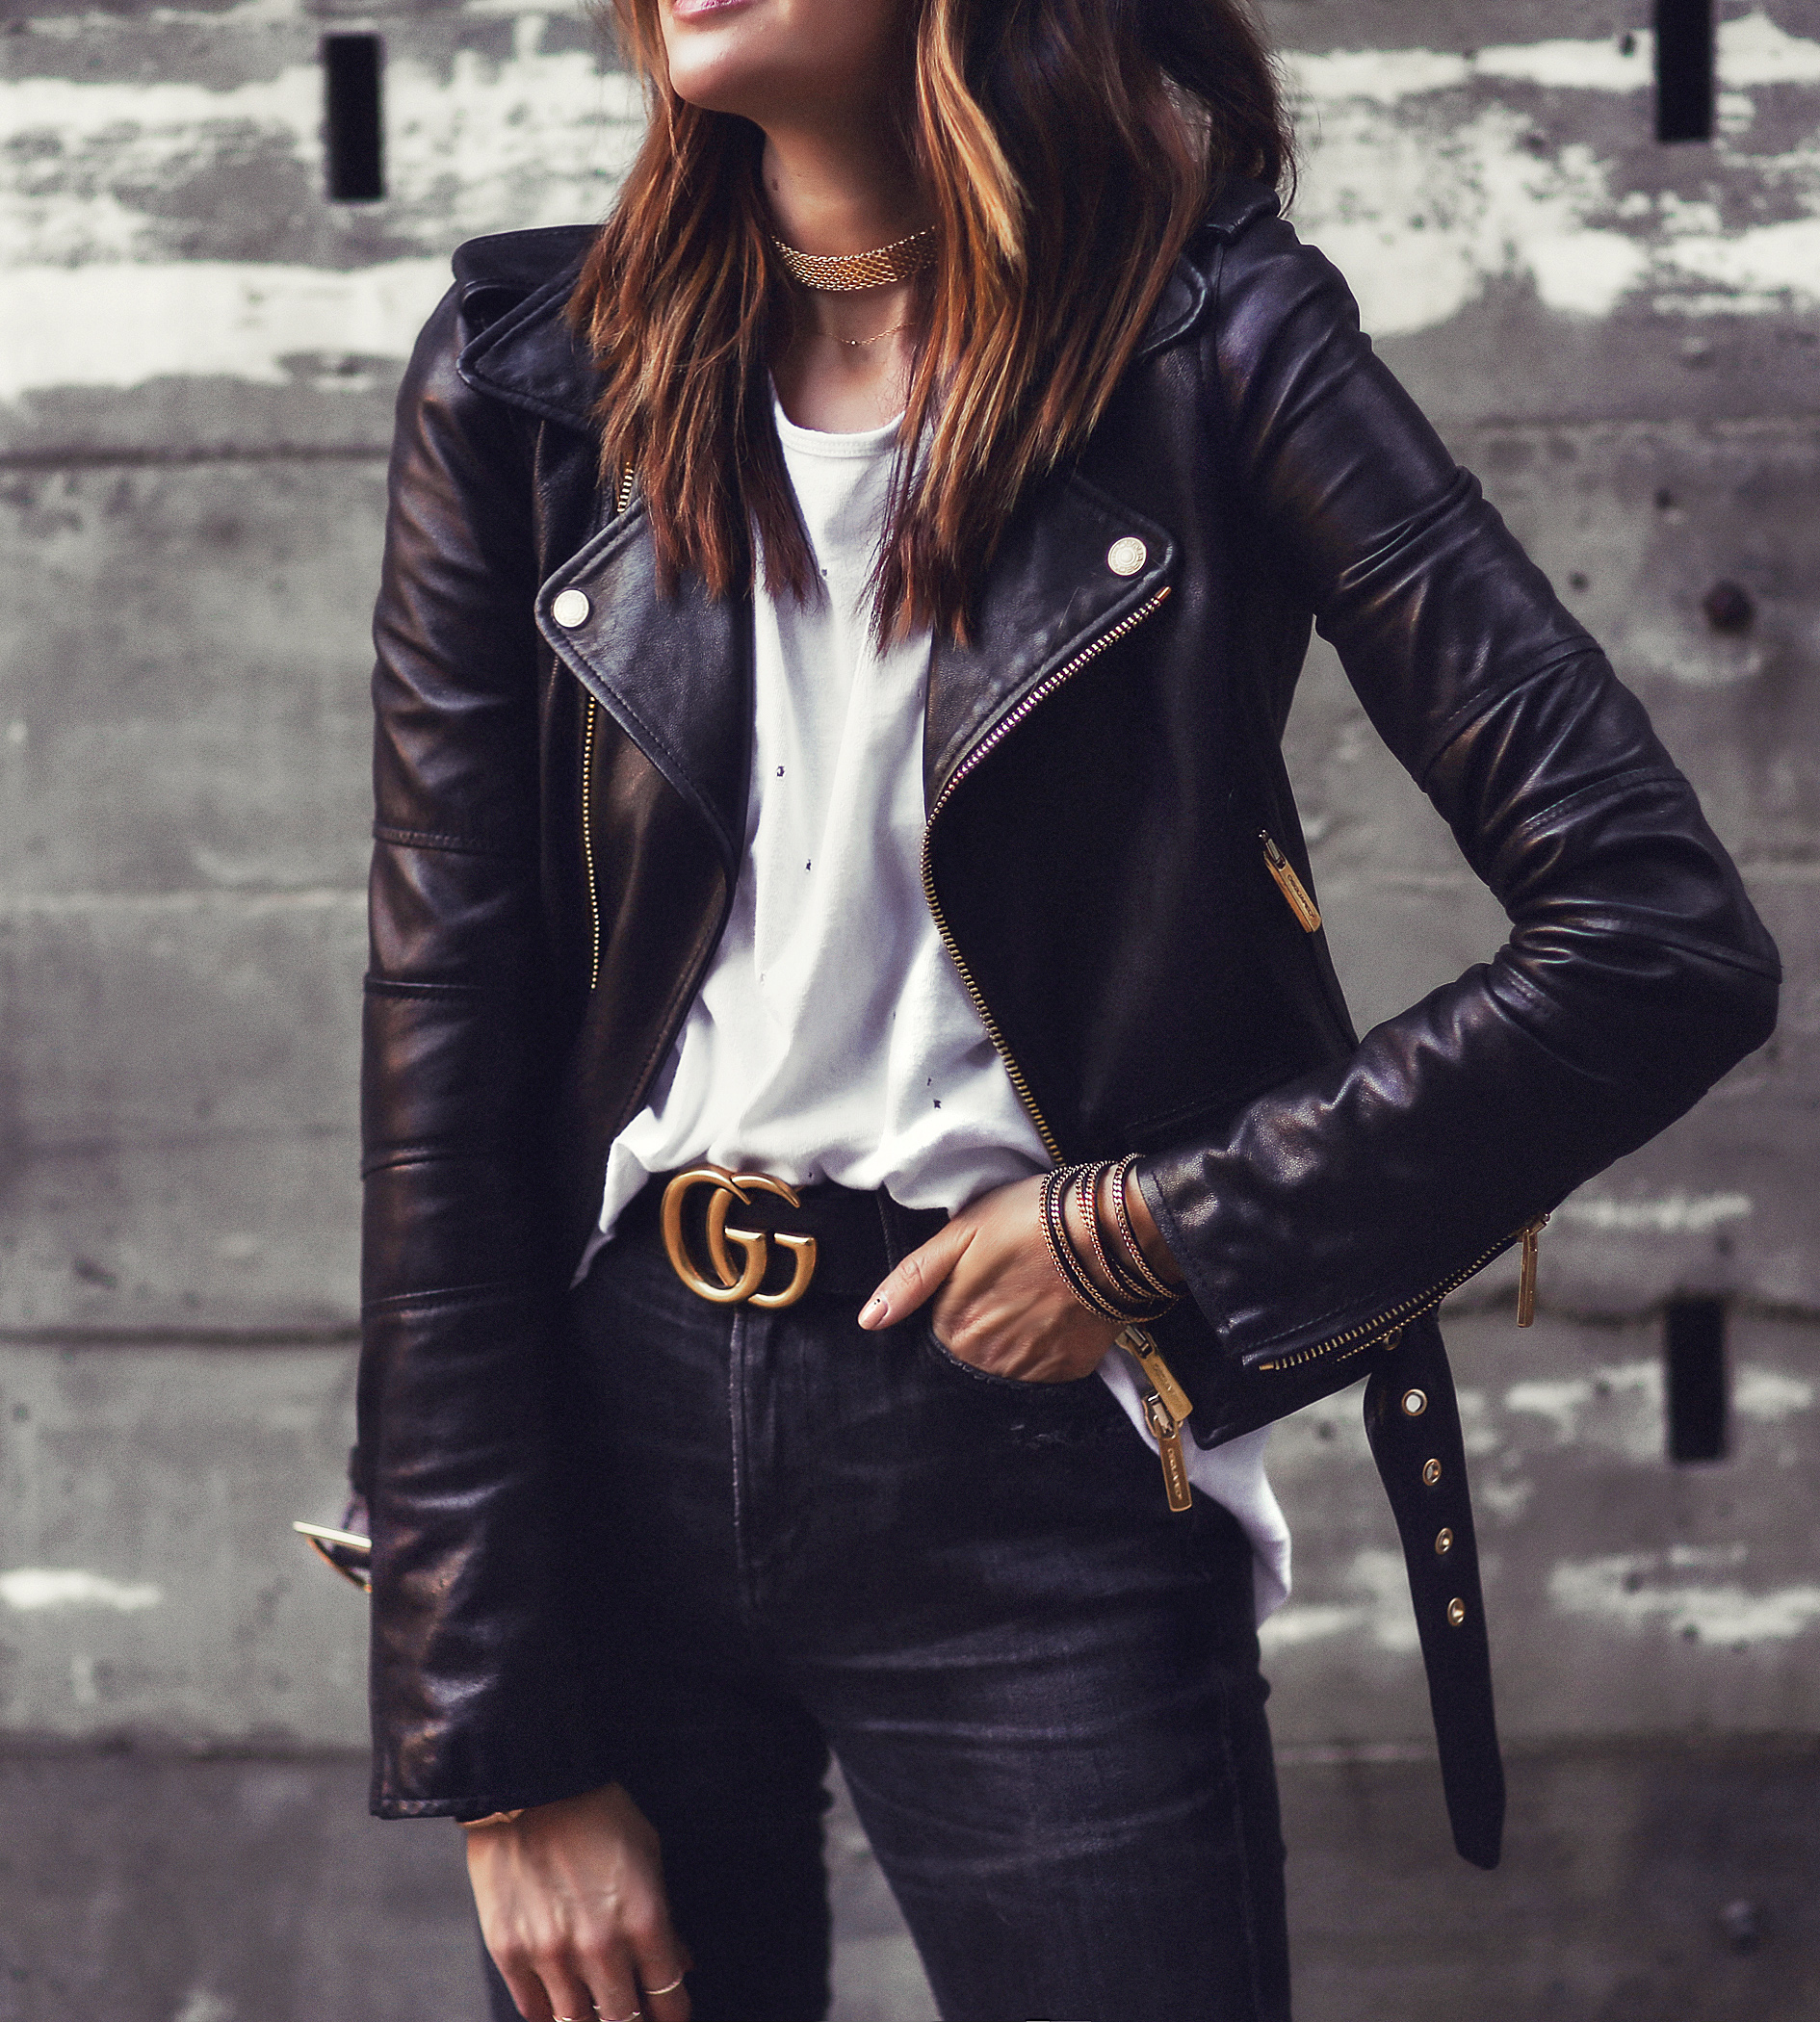 black and gold gucci belt and leather jacket